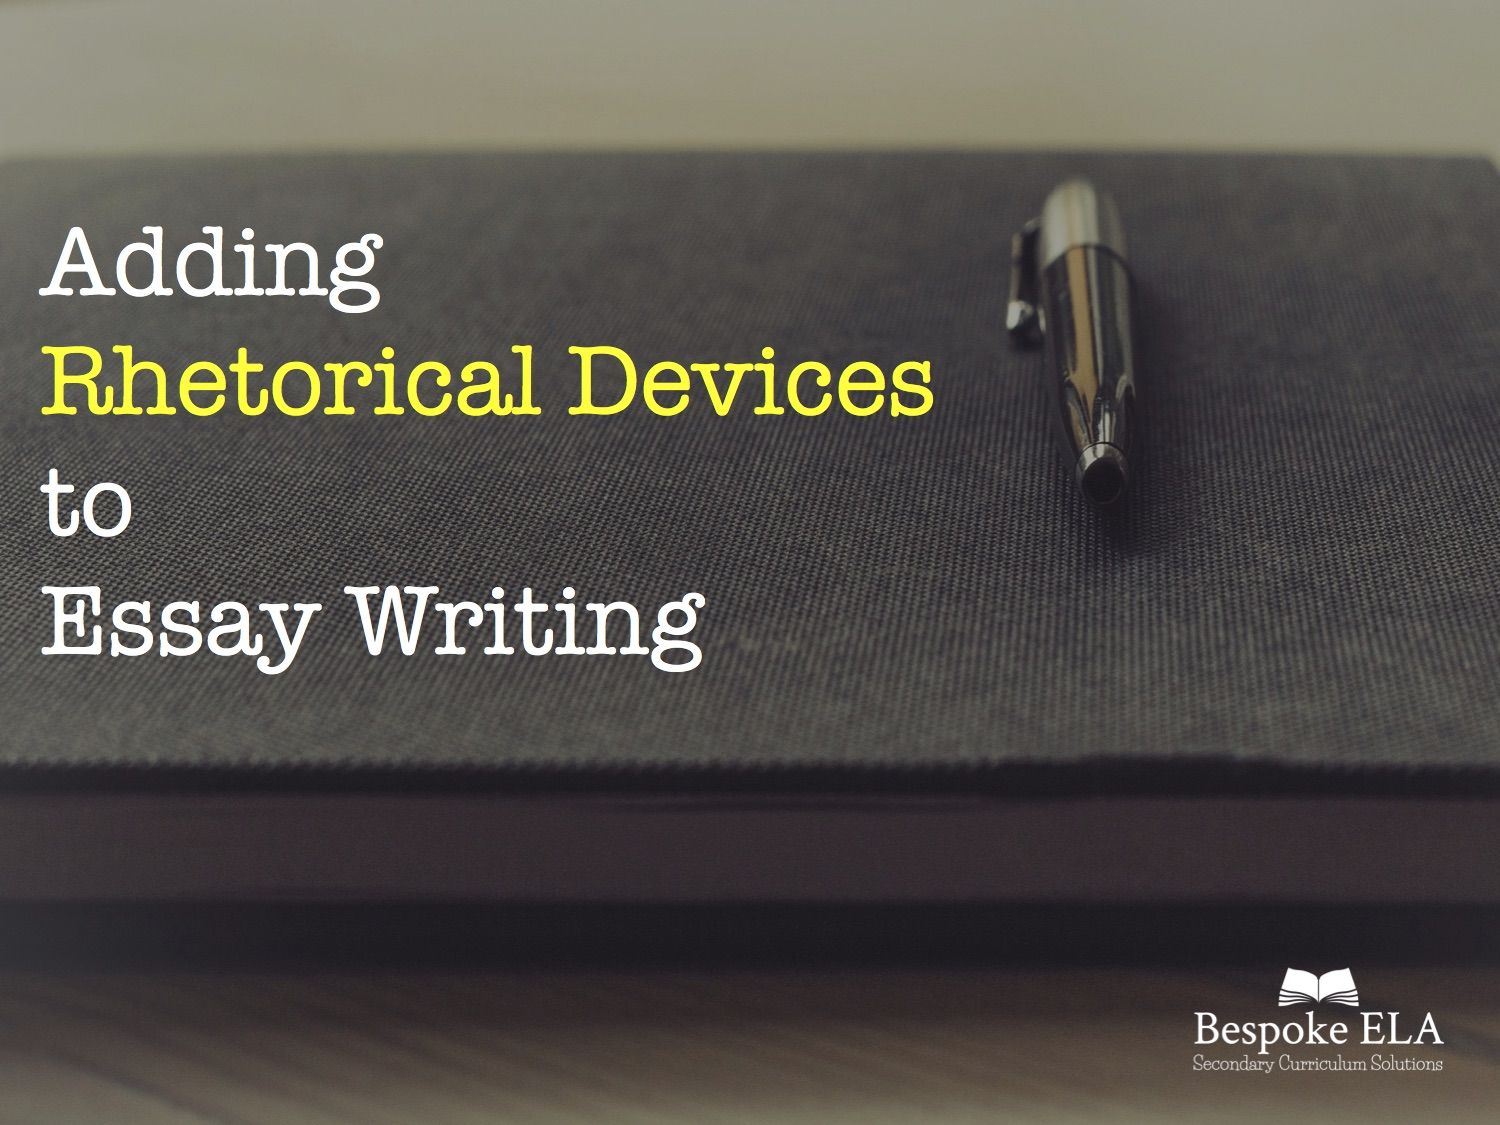 adding rhetorical devices to essay writing for persuasive power  adding rhetorical devices to essay writing for persuasive power